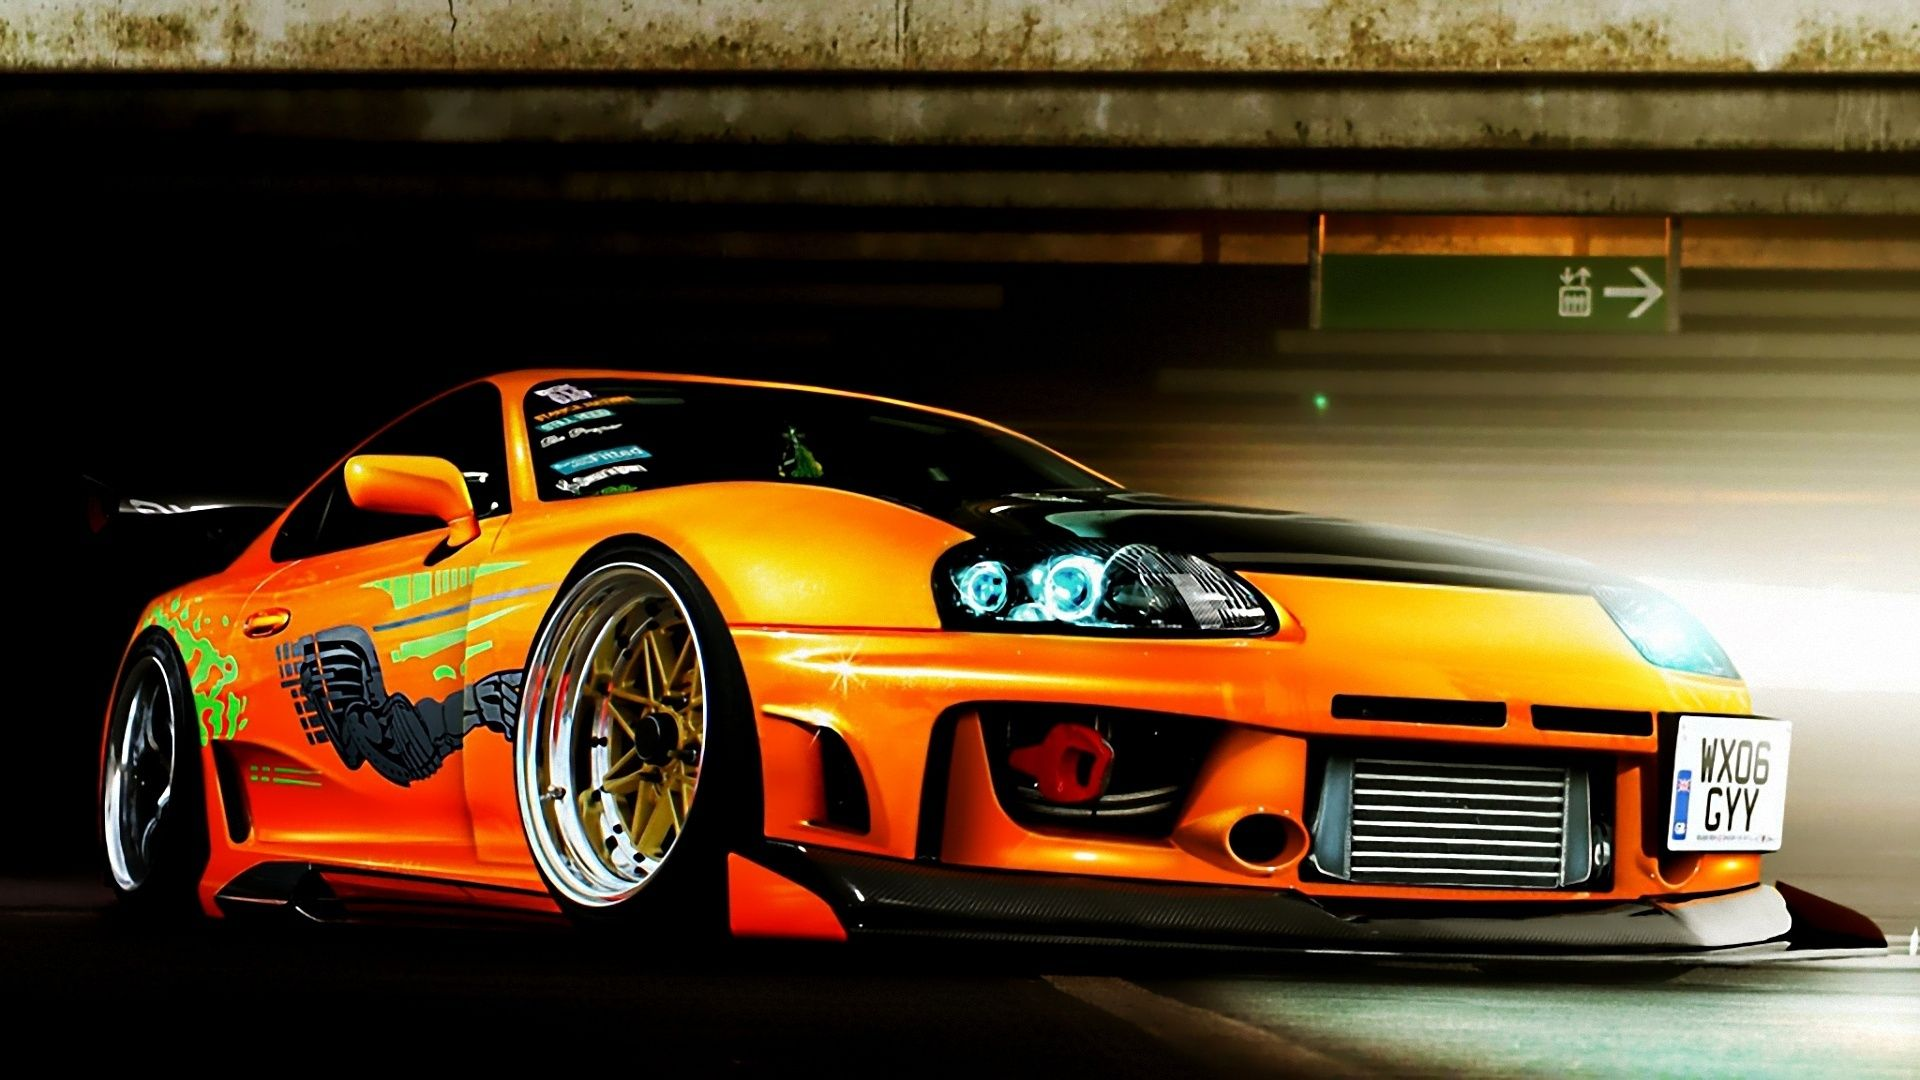 Car JDM Tuning Toyota Supra Wallpapers HD Desktop And Mobile